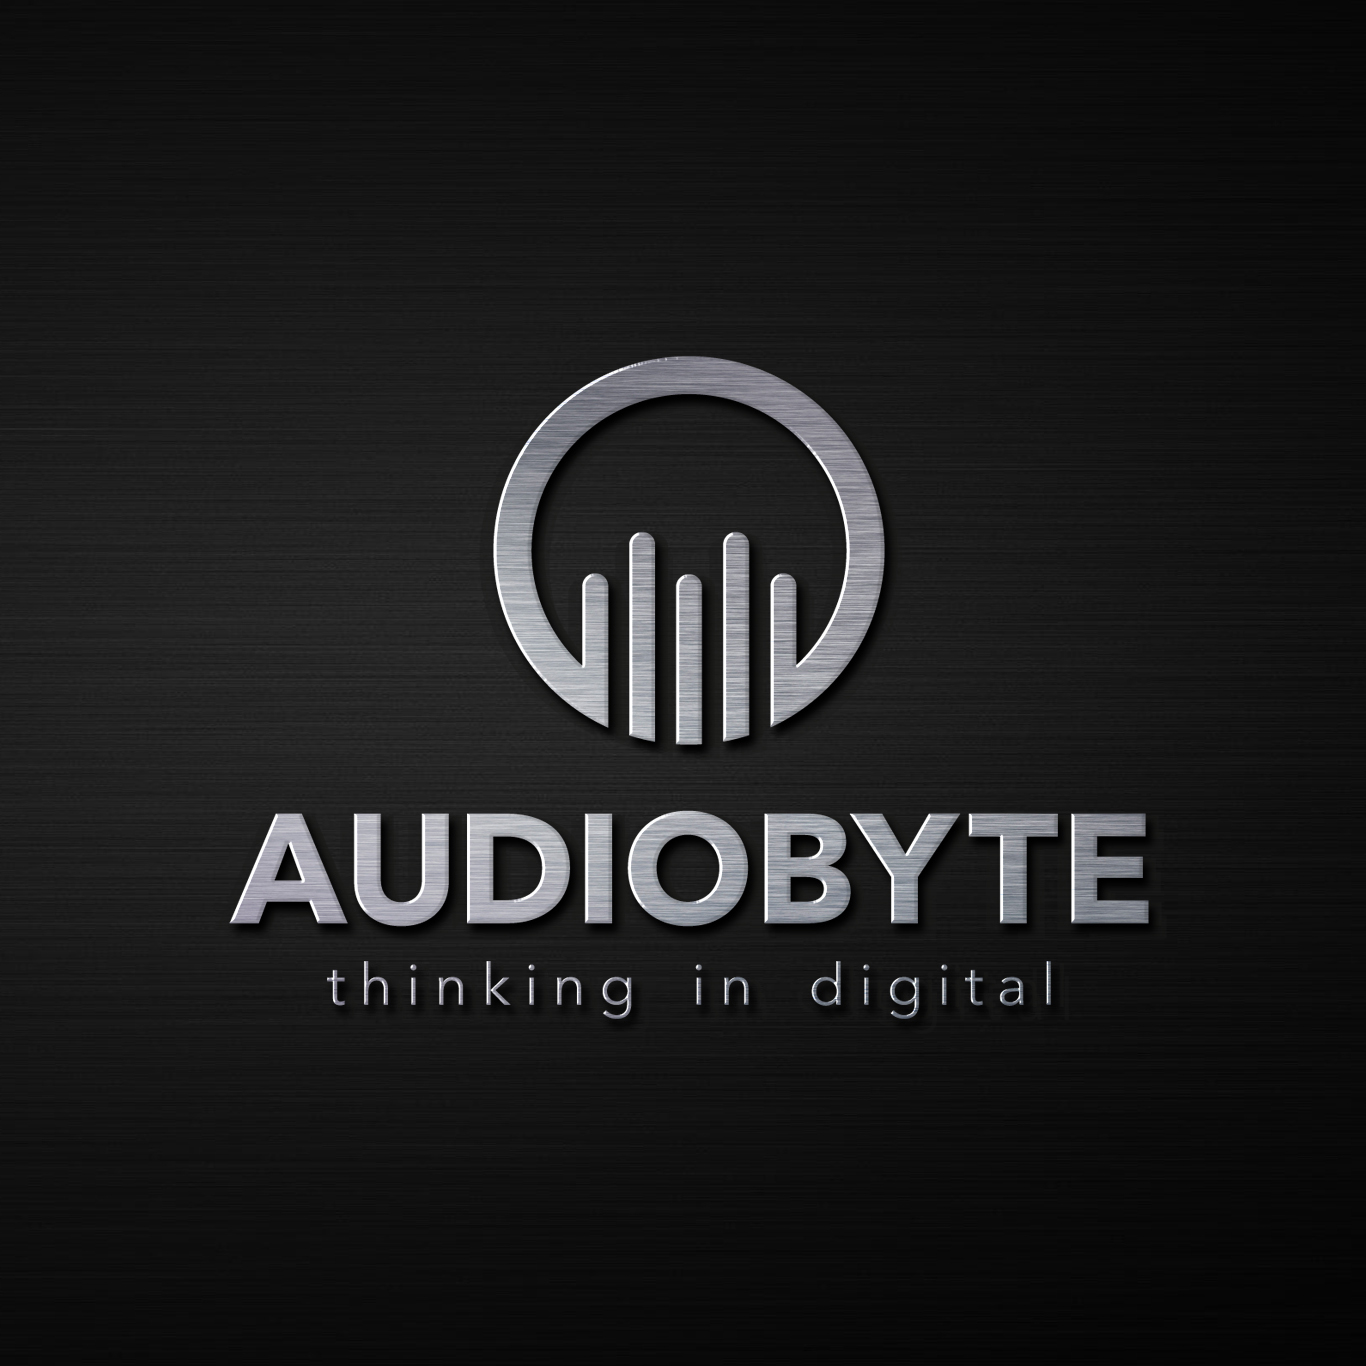 Audiobyte logo redesign